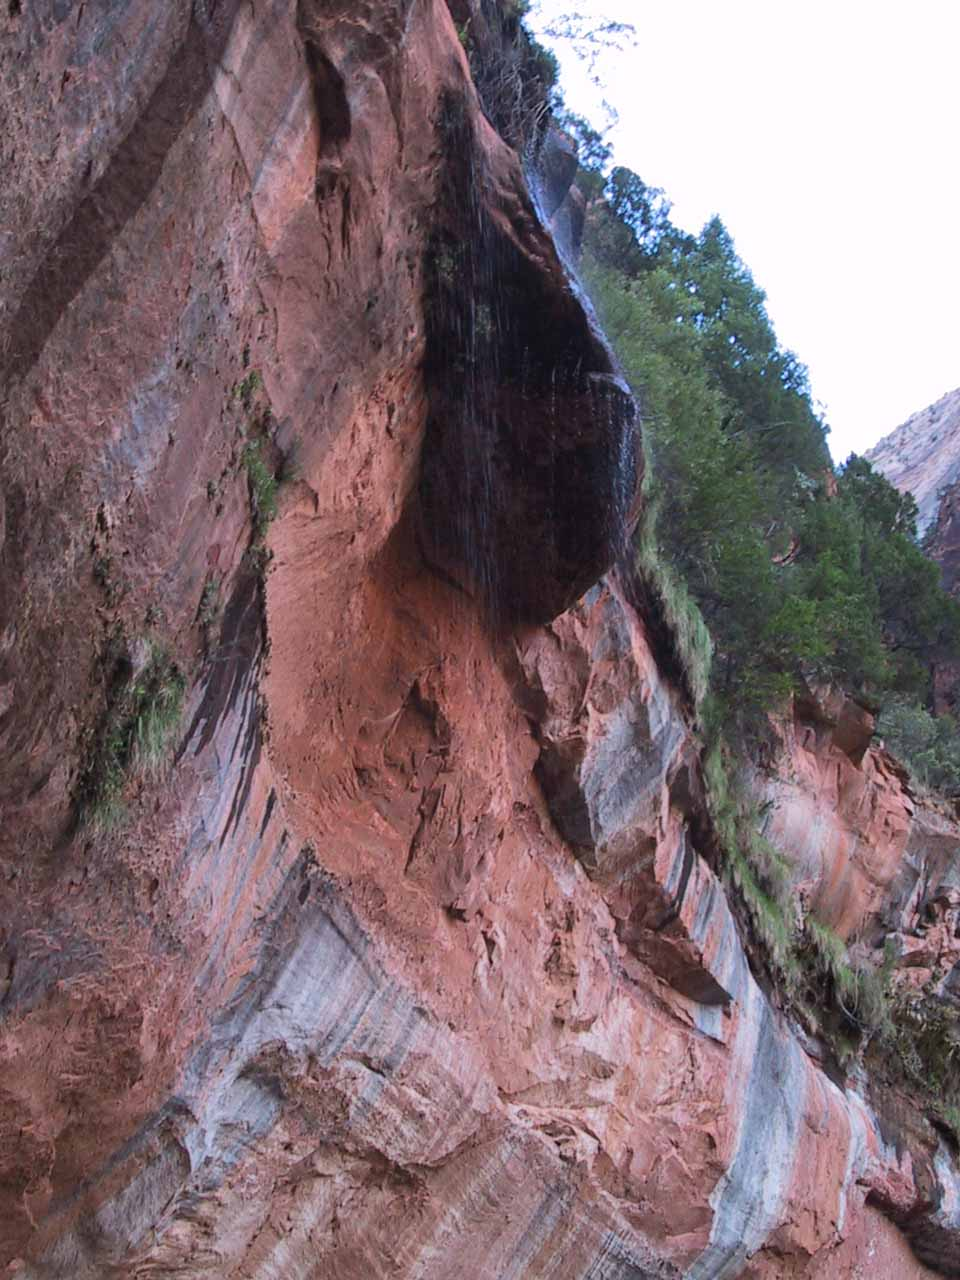 The waterfalls of the Lower Emerald Pools acted more like weeping rocks in June 2001